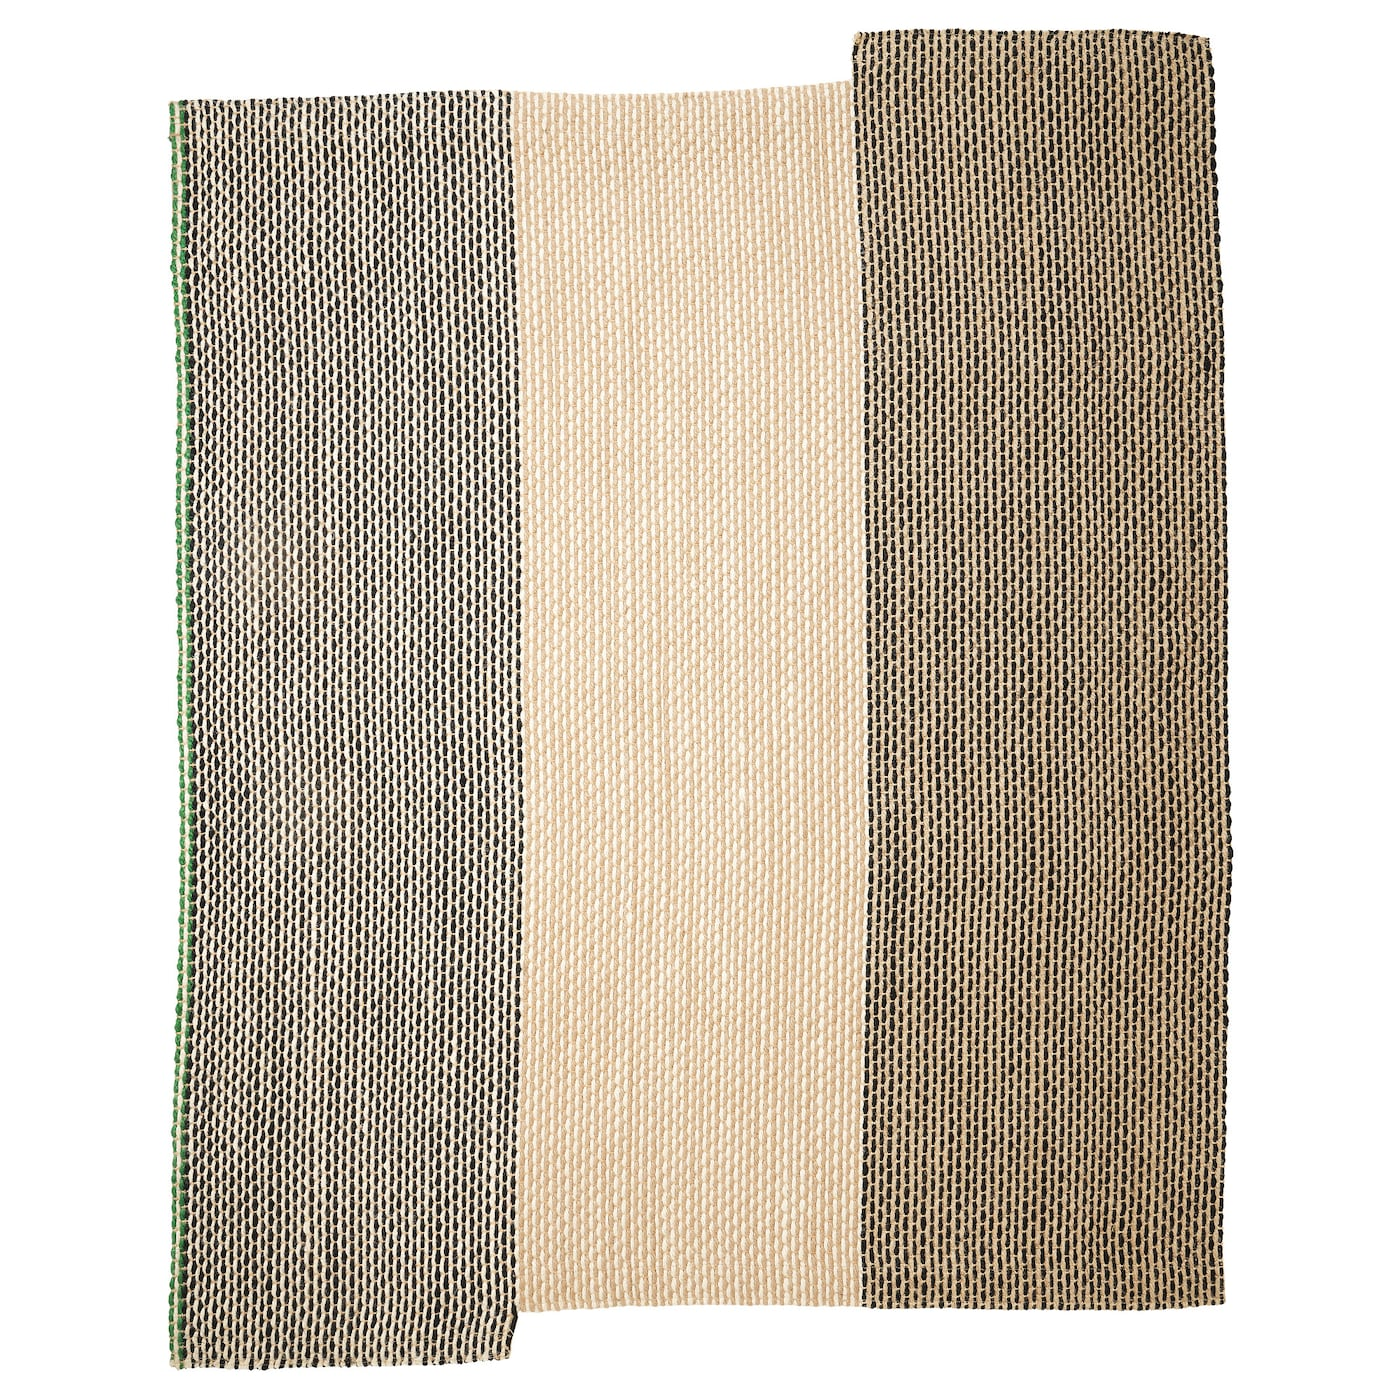 IKEA SATTRUP rug, flatwoven Easy to vacuum thanks to its flat surface.